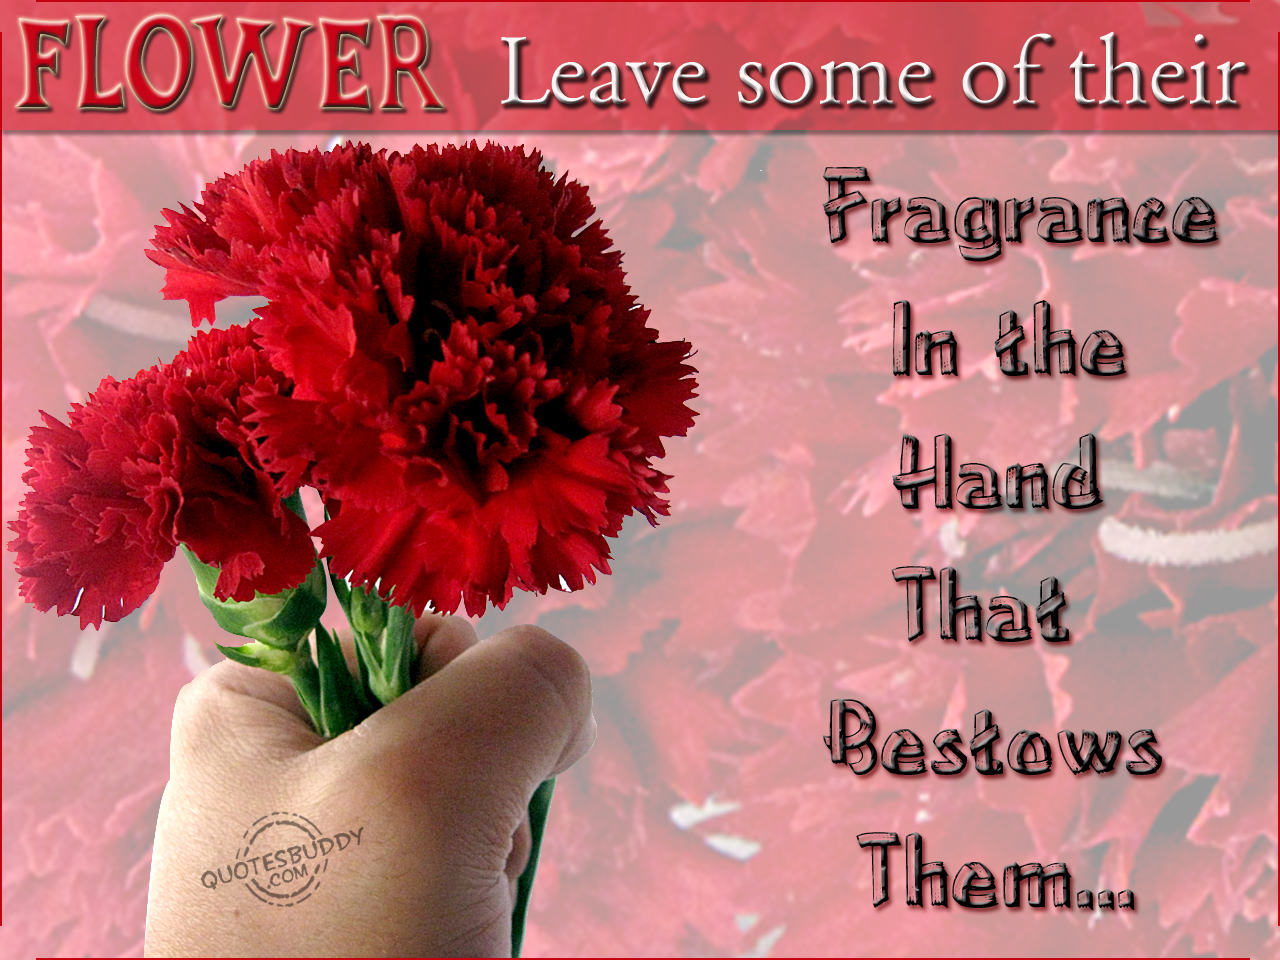 Quotes about beauty and flowers 64 quotes izmirmasajfo